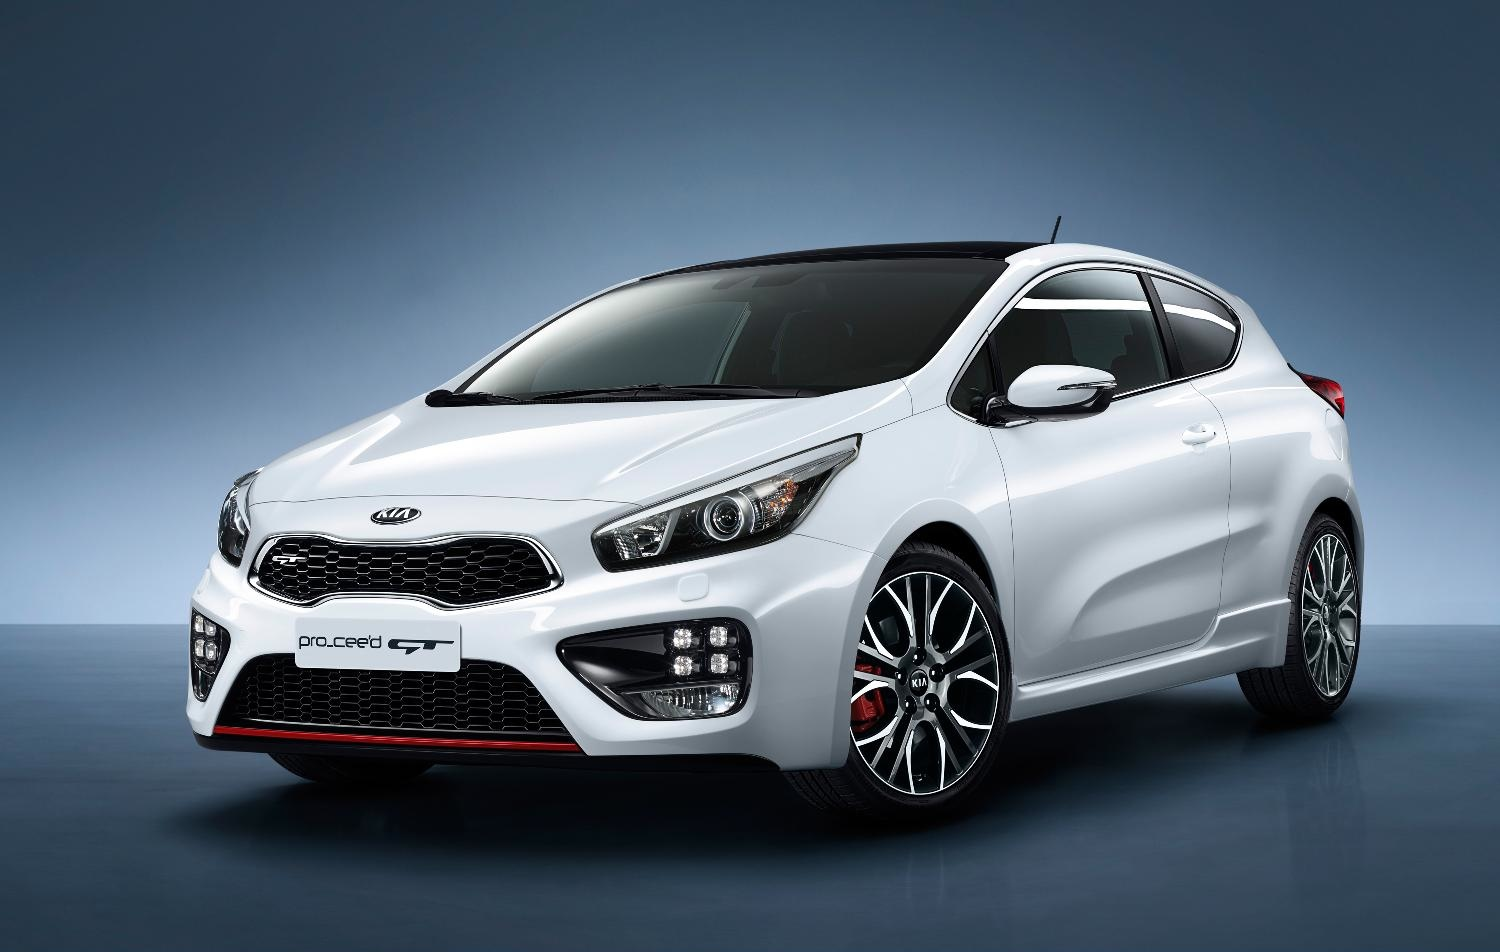 kia-procee-d-gt-official-specs-revealed-photo-gallery_8.jpg